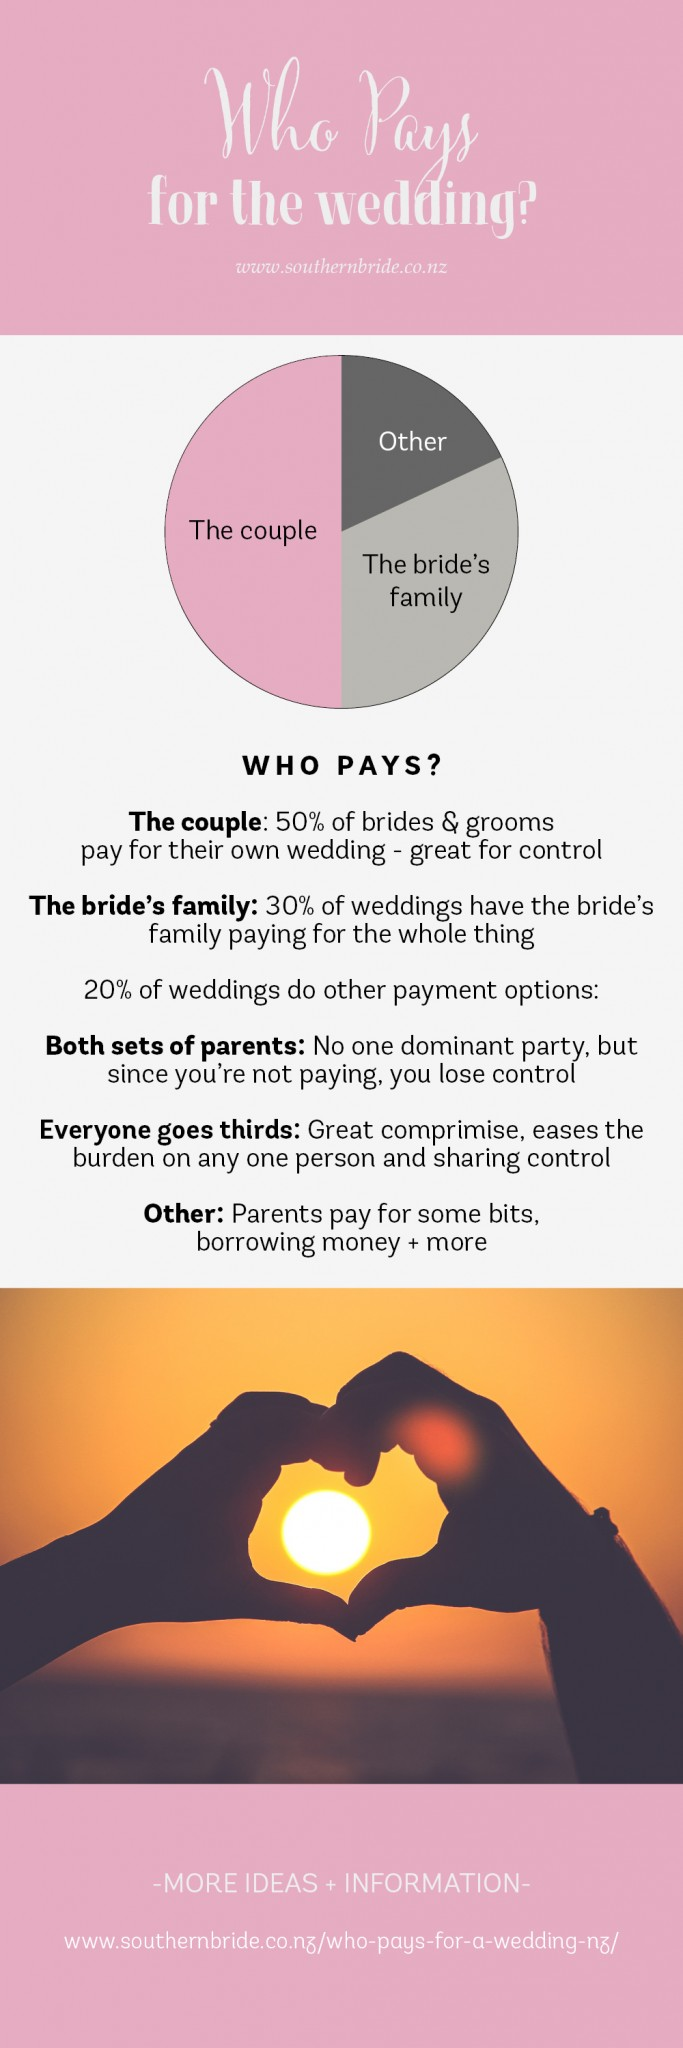 Who pays for a wedding in nz who pays for a wedding in nz bride and groom parents or both junglespirit Choice Image